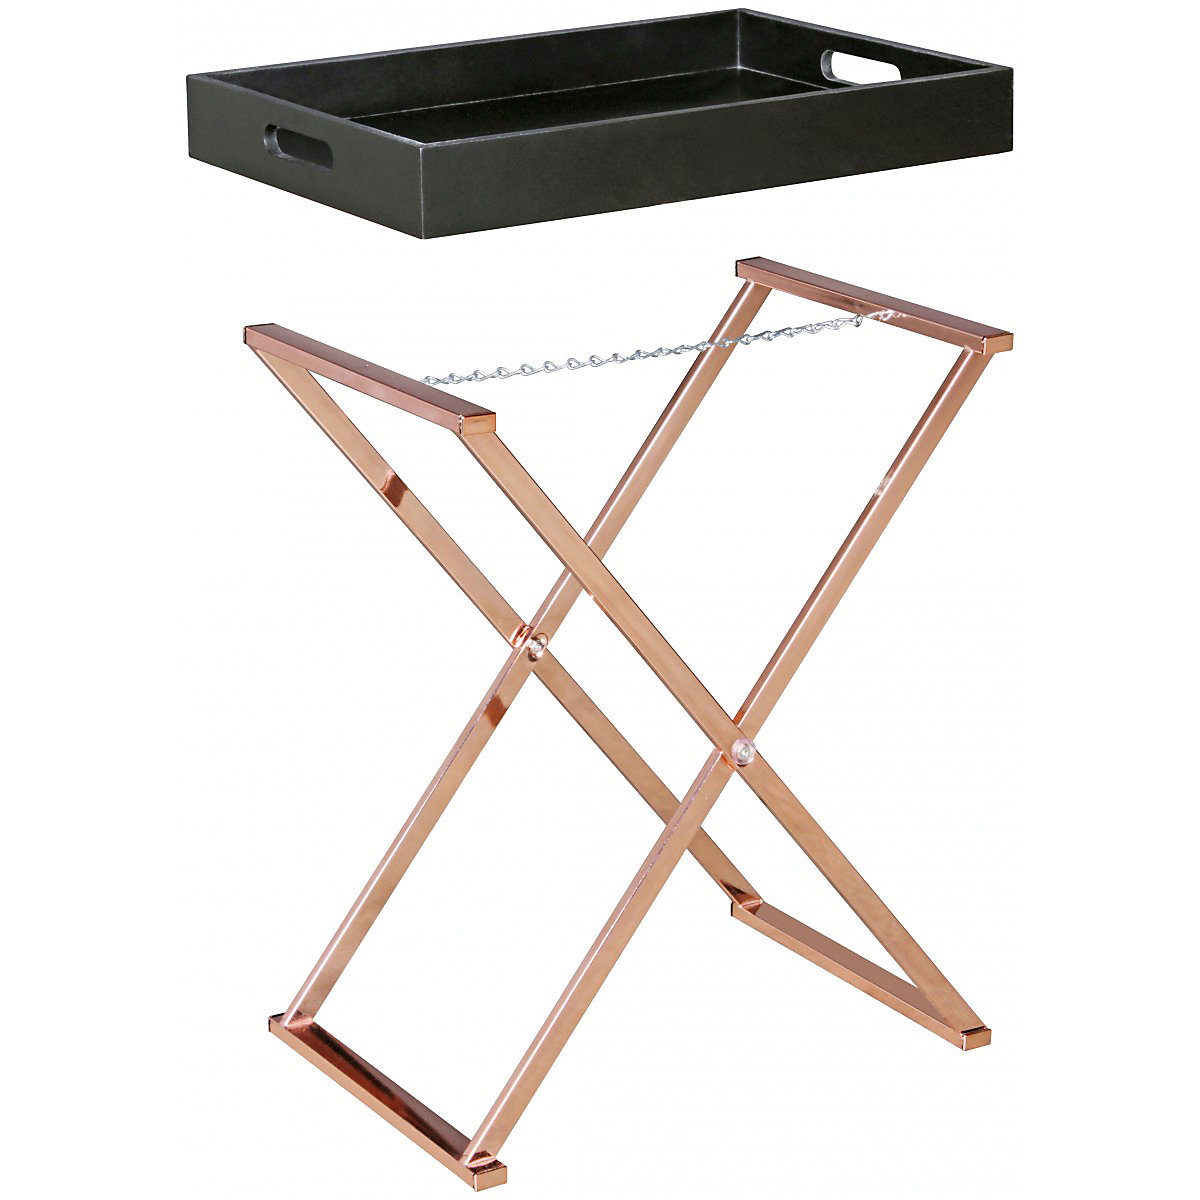 beistelltisch tablett mit klappbarem gestell bronze yomonda. Black Bedroom Furniture Sets. Home Design Ideas